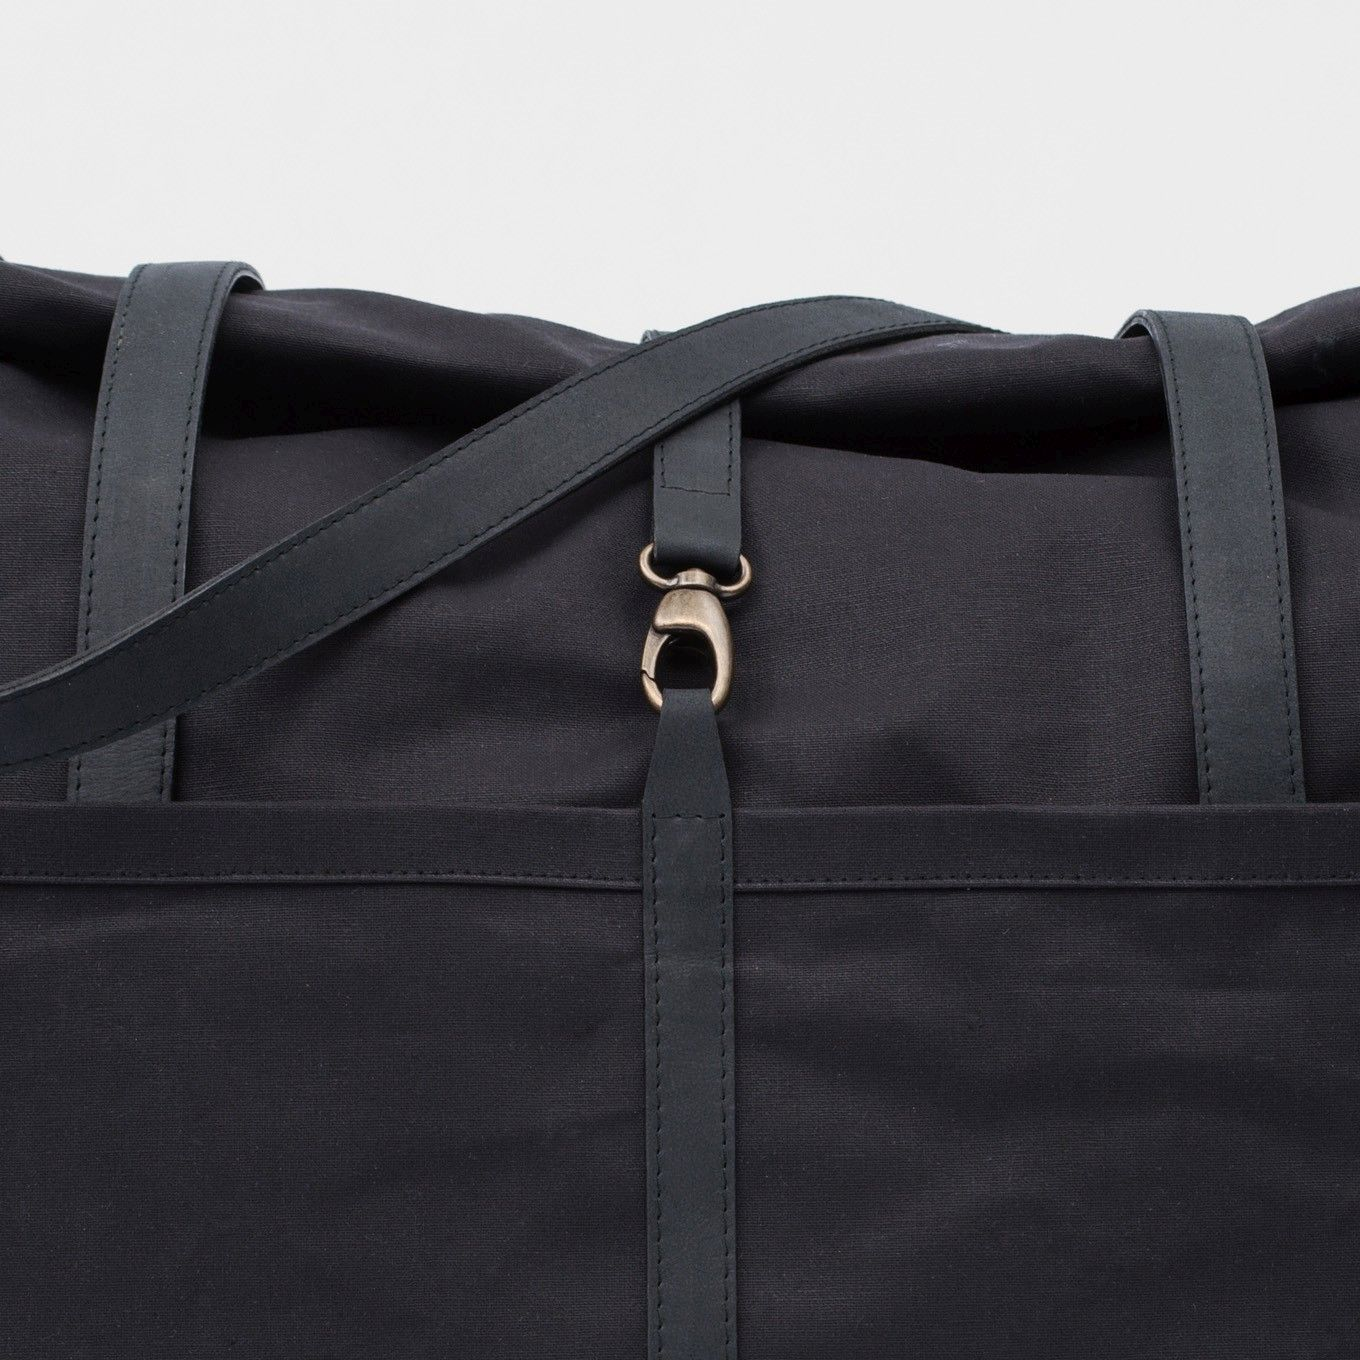 39_Weekender-Coated Cotton-Leather-Hand Luggage